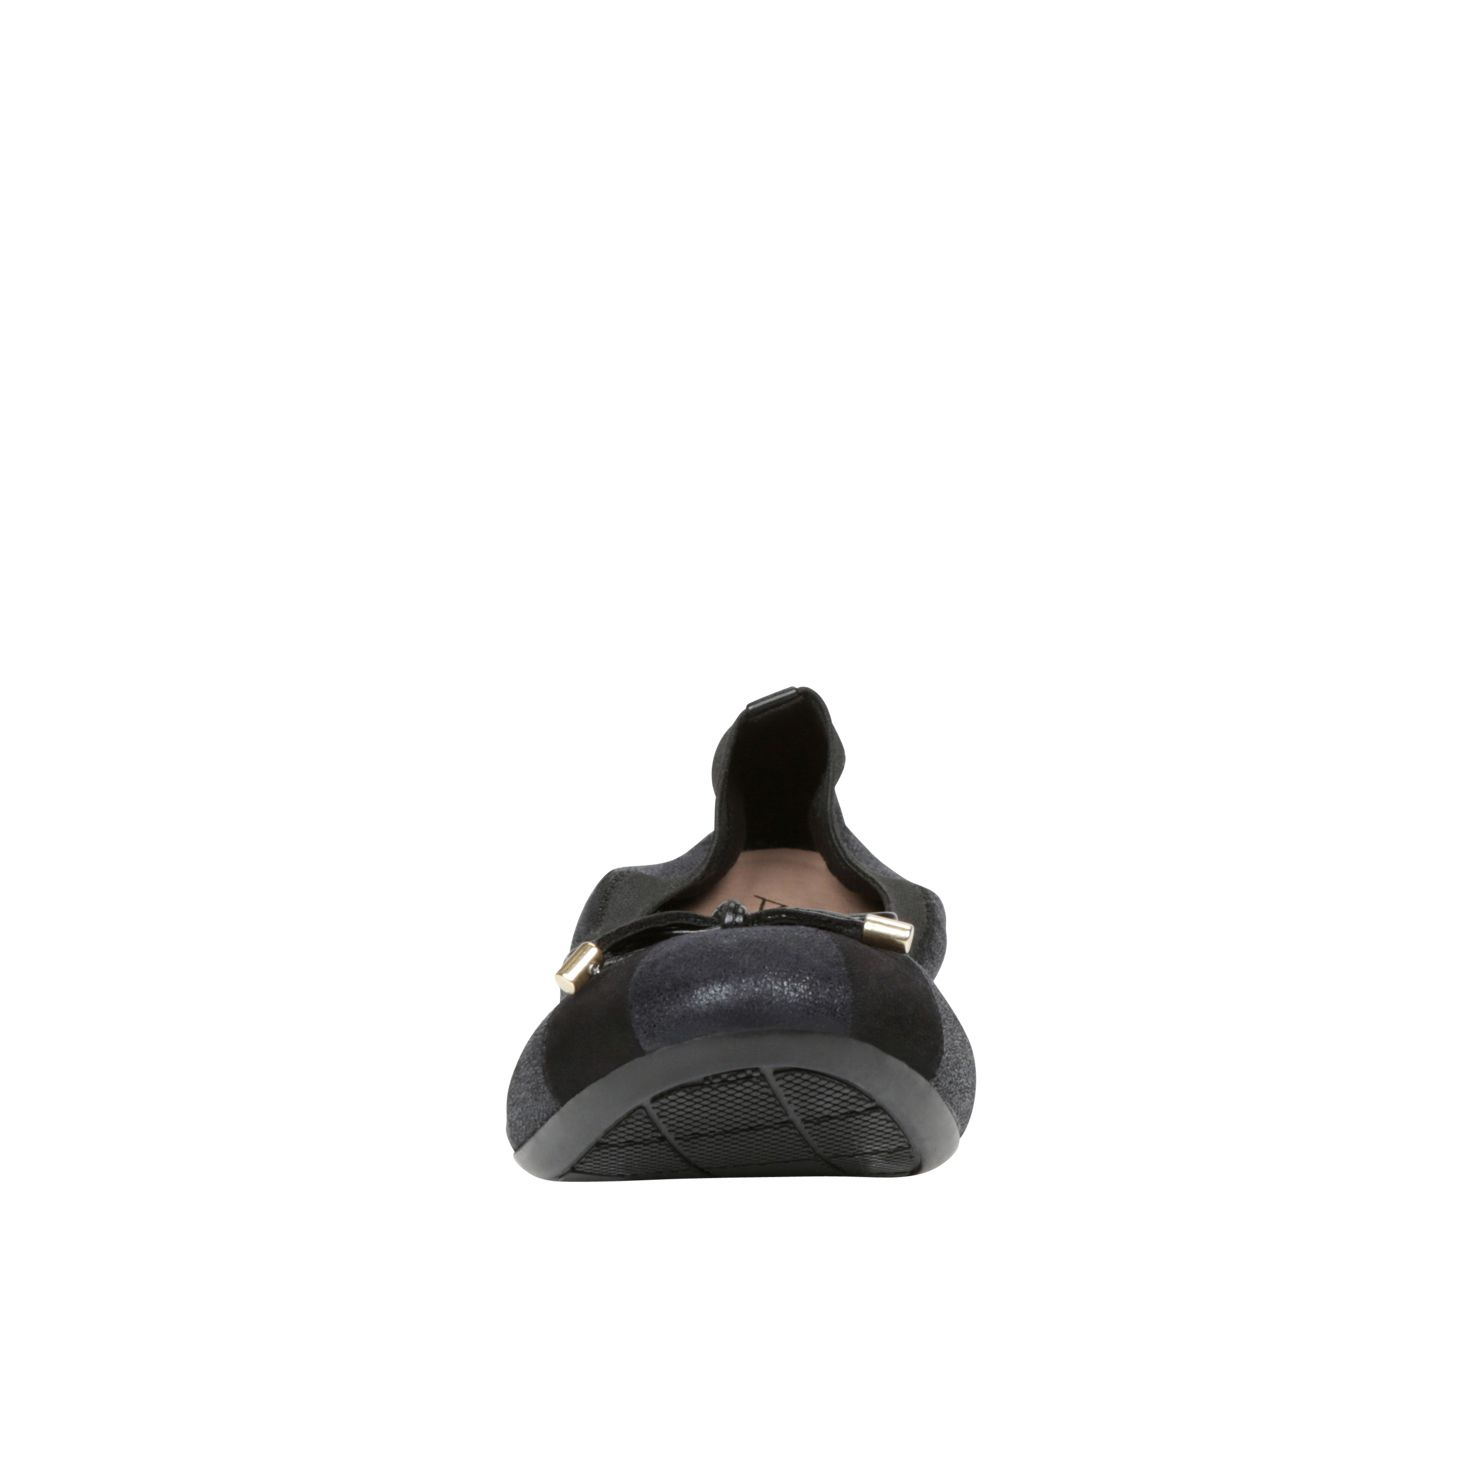 Alania round toe ballerina shoes